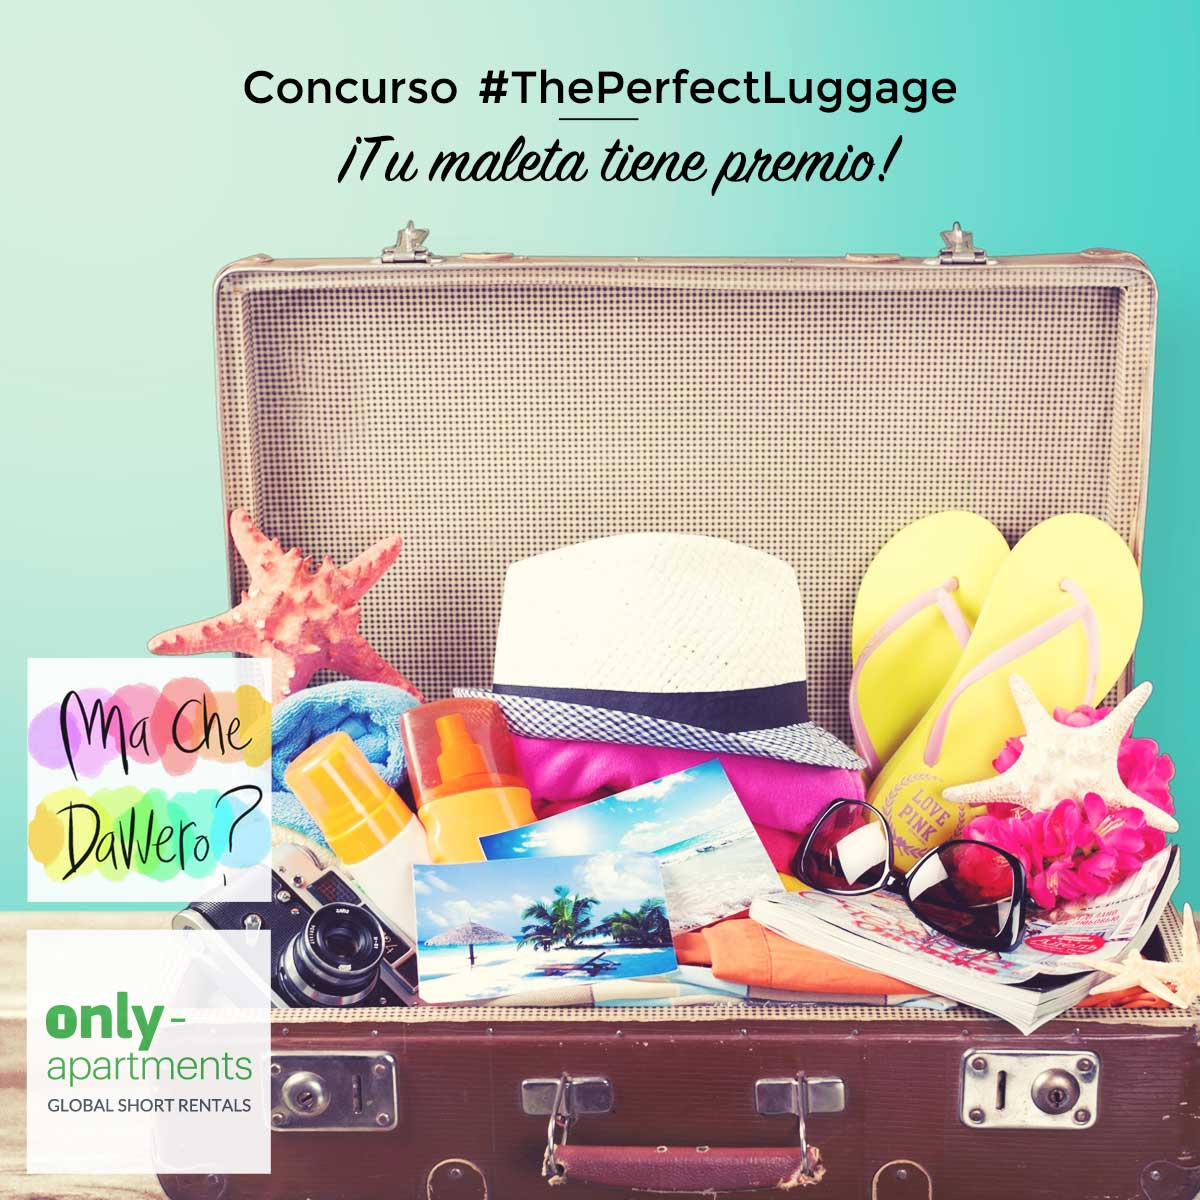 Concorso #ThePerfectLuggage